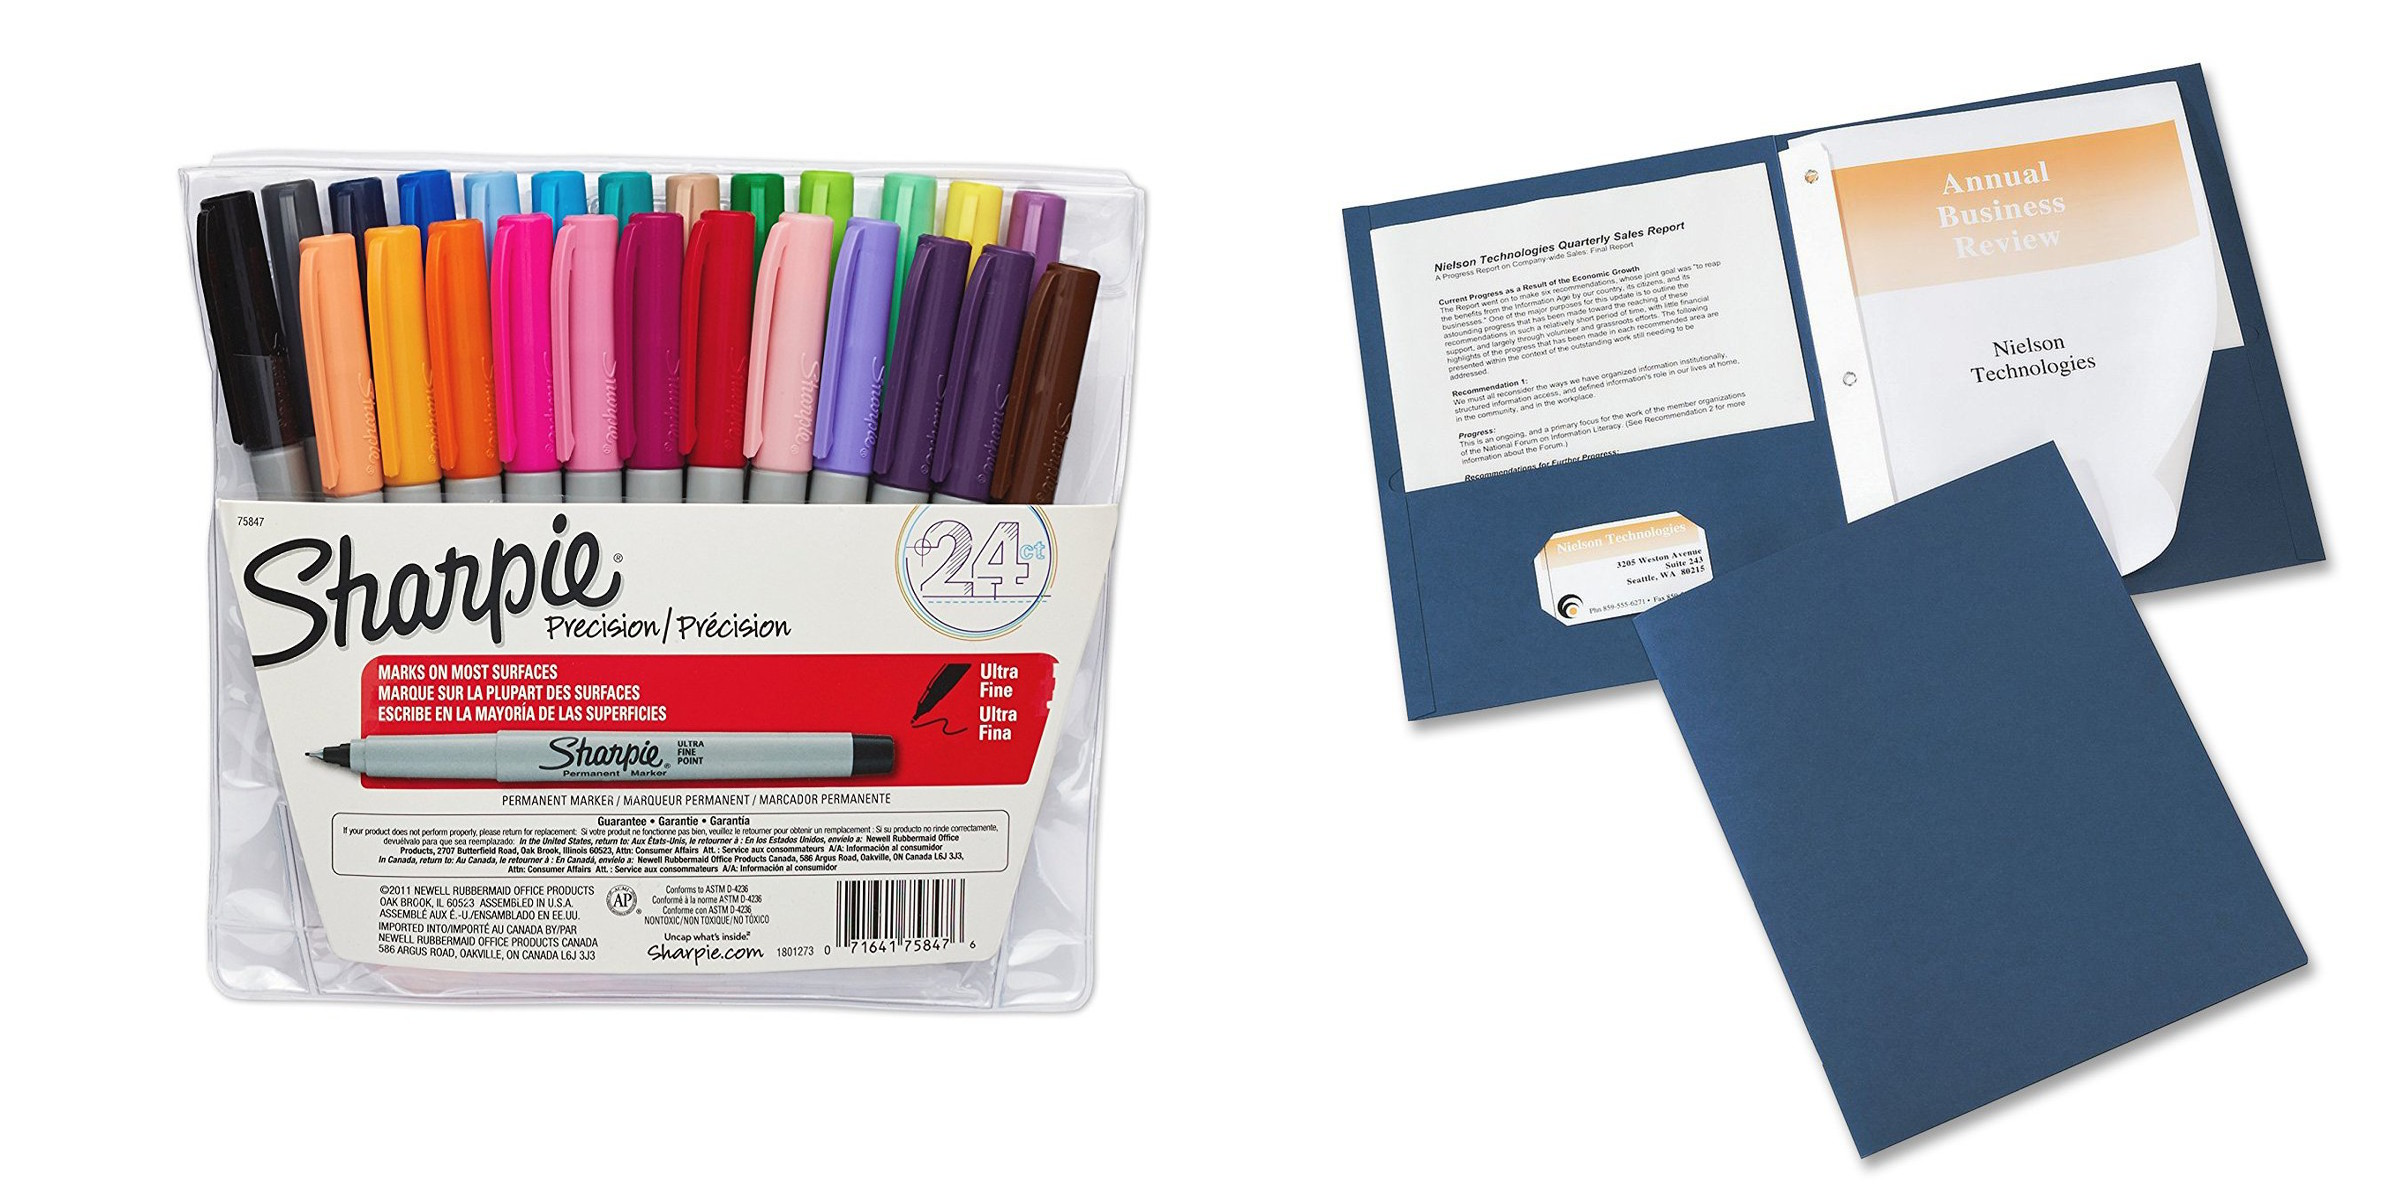 Incroyable Office Supplies: 24 Pack Of Sharpie Permanent Markers (Assorted Colors) $9,  25 Pack Pocket Polders $6, More   9to5Toys